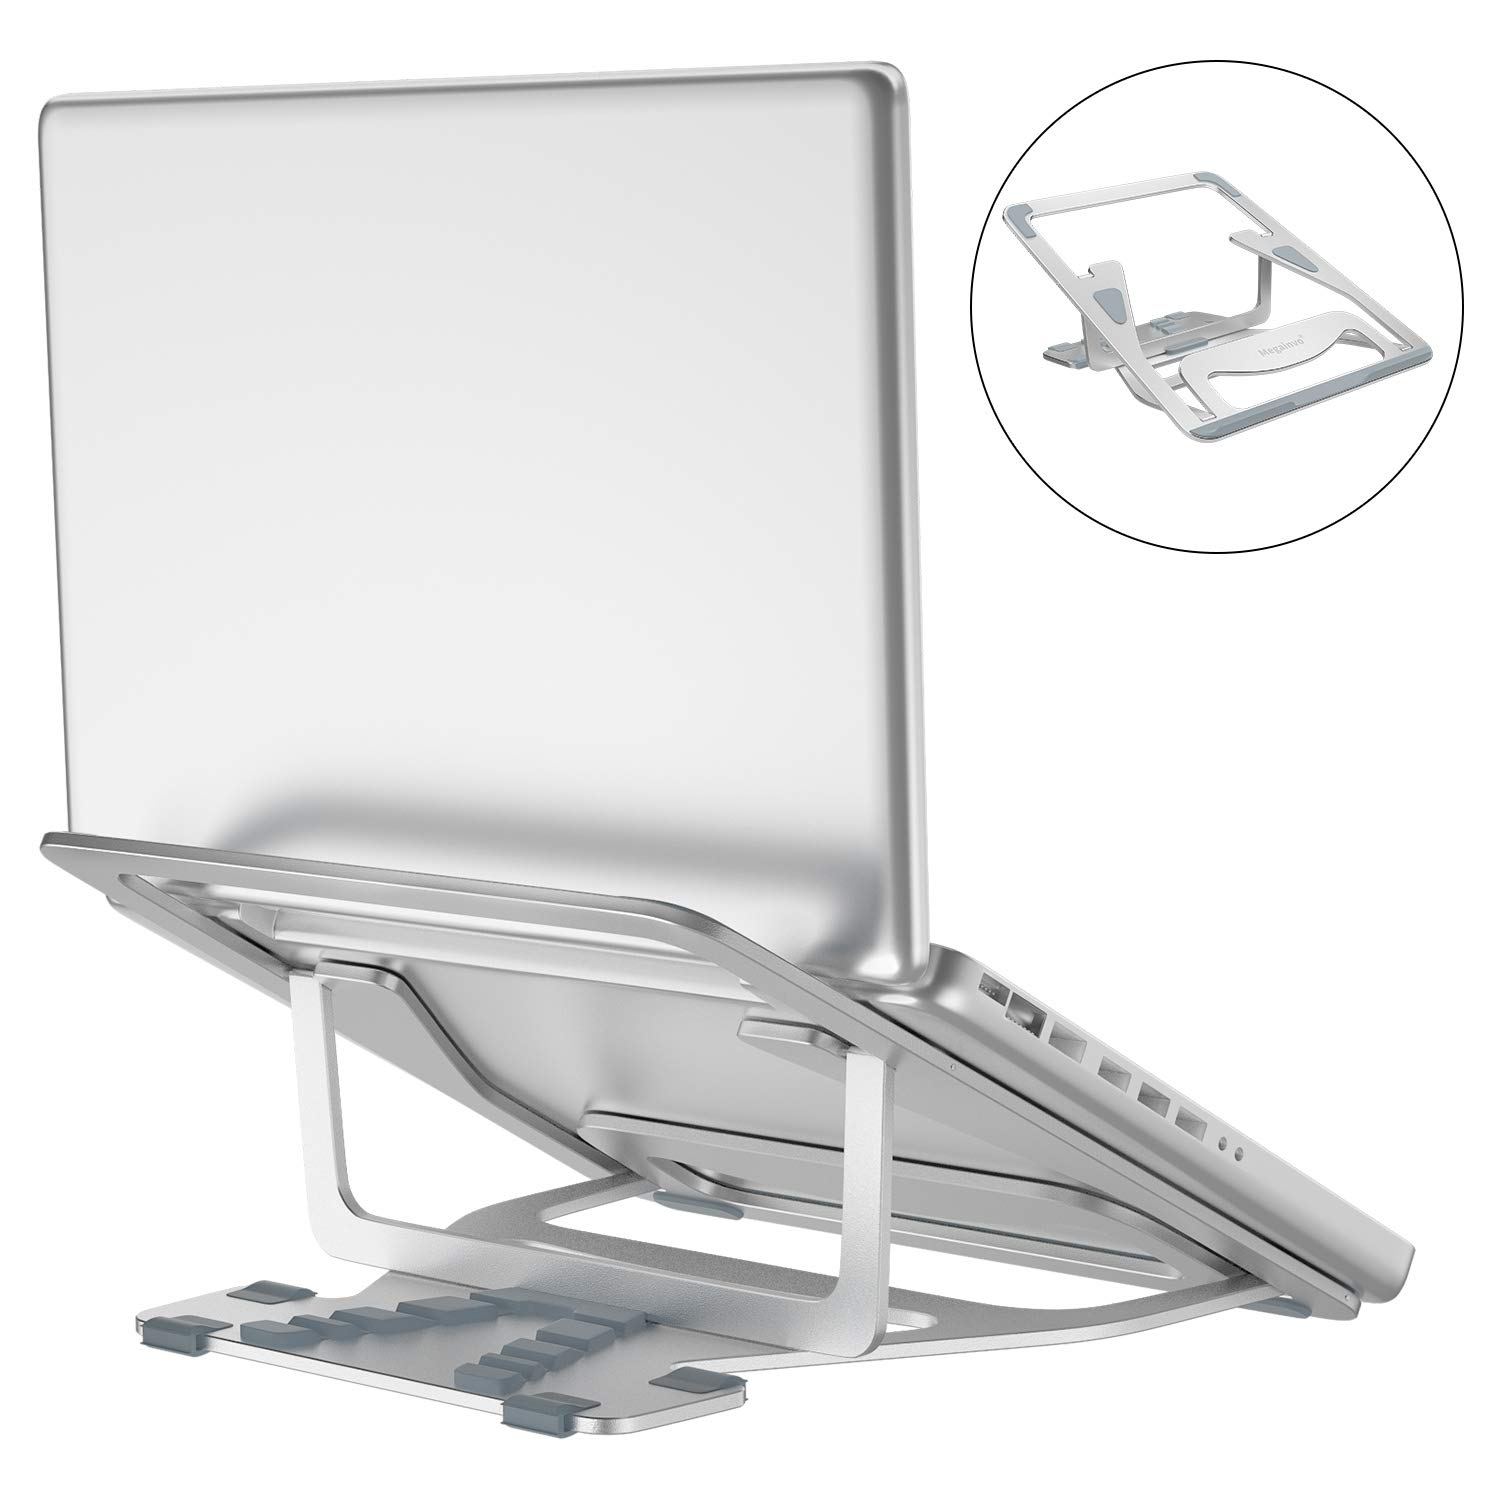 Adjustable Laptop Stand, Megainvo Foldable Laptop Stand Portable MacBook Riser Aluminum Alloy Ventilated Holder 5-Angle Adjustable for 9.7-17 Inch Notebook MacBook Computer PC iPad Tablet